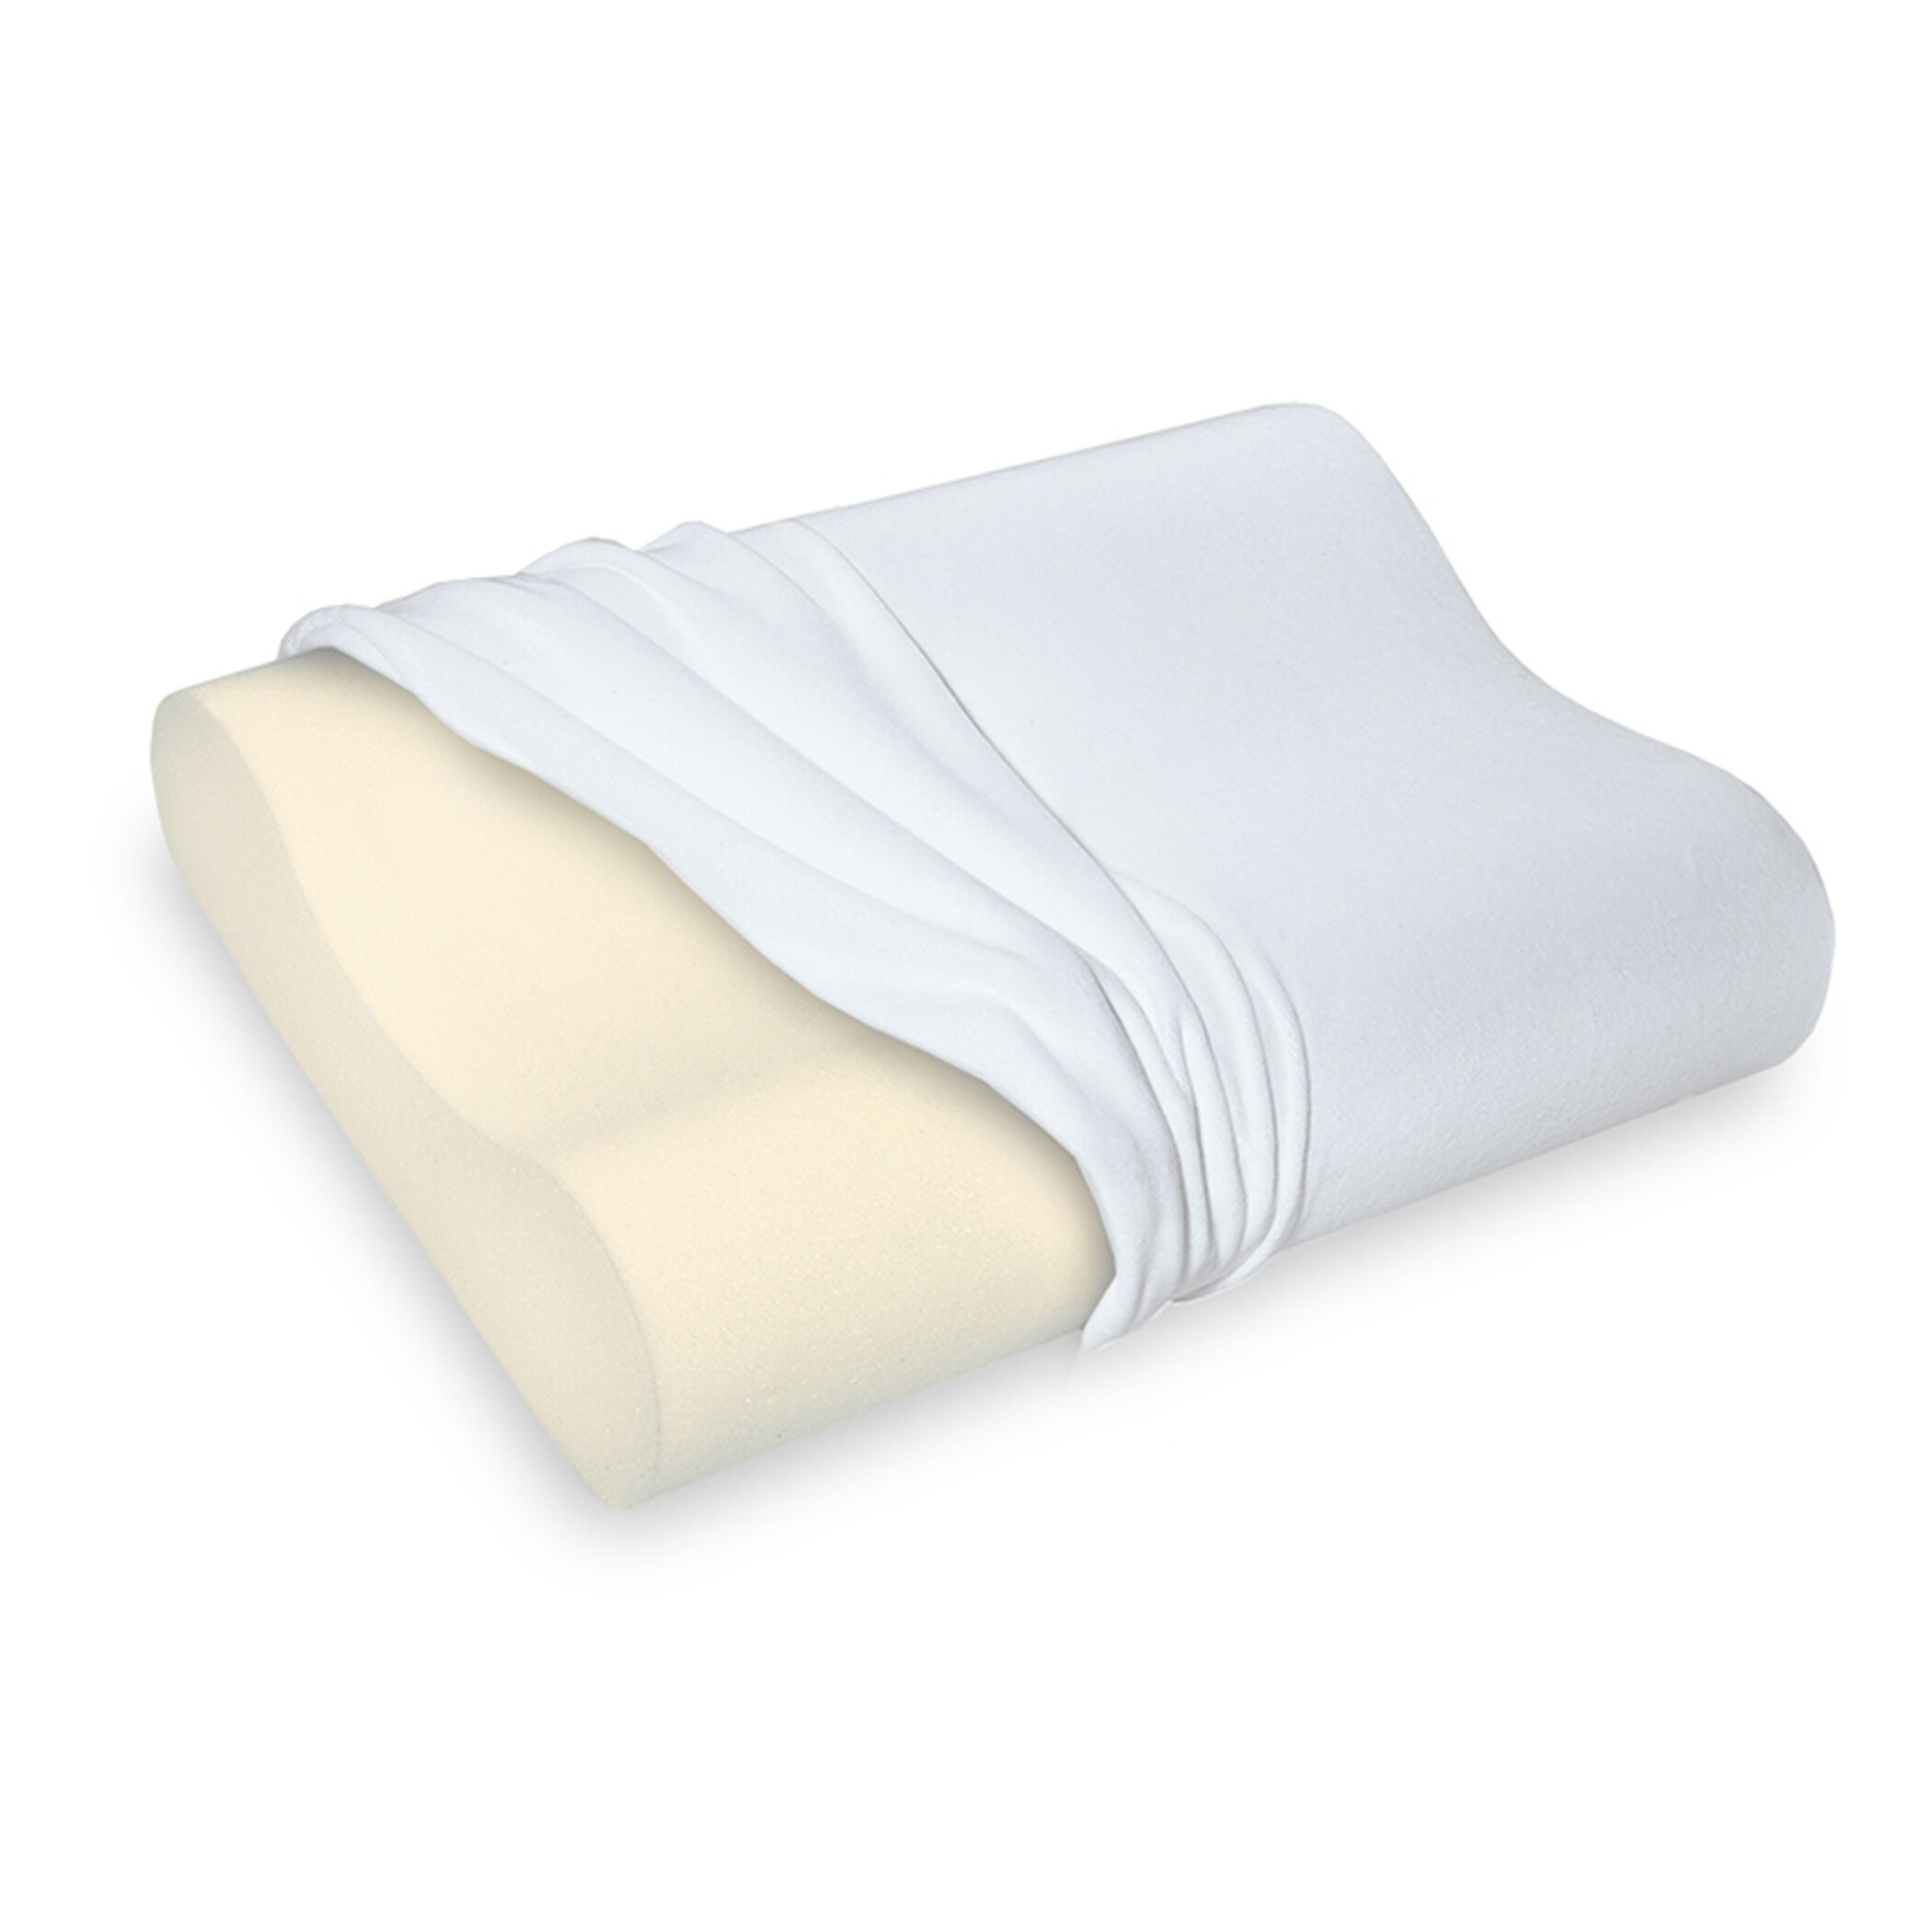 Patio wall decorations - Memory Foam Contour Pillow Wayfair